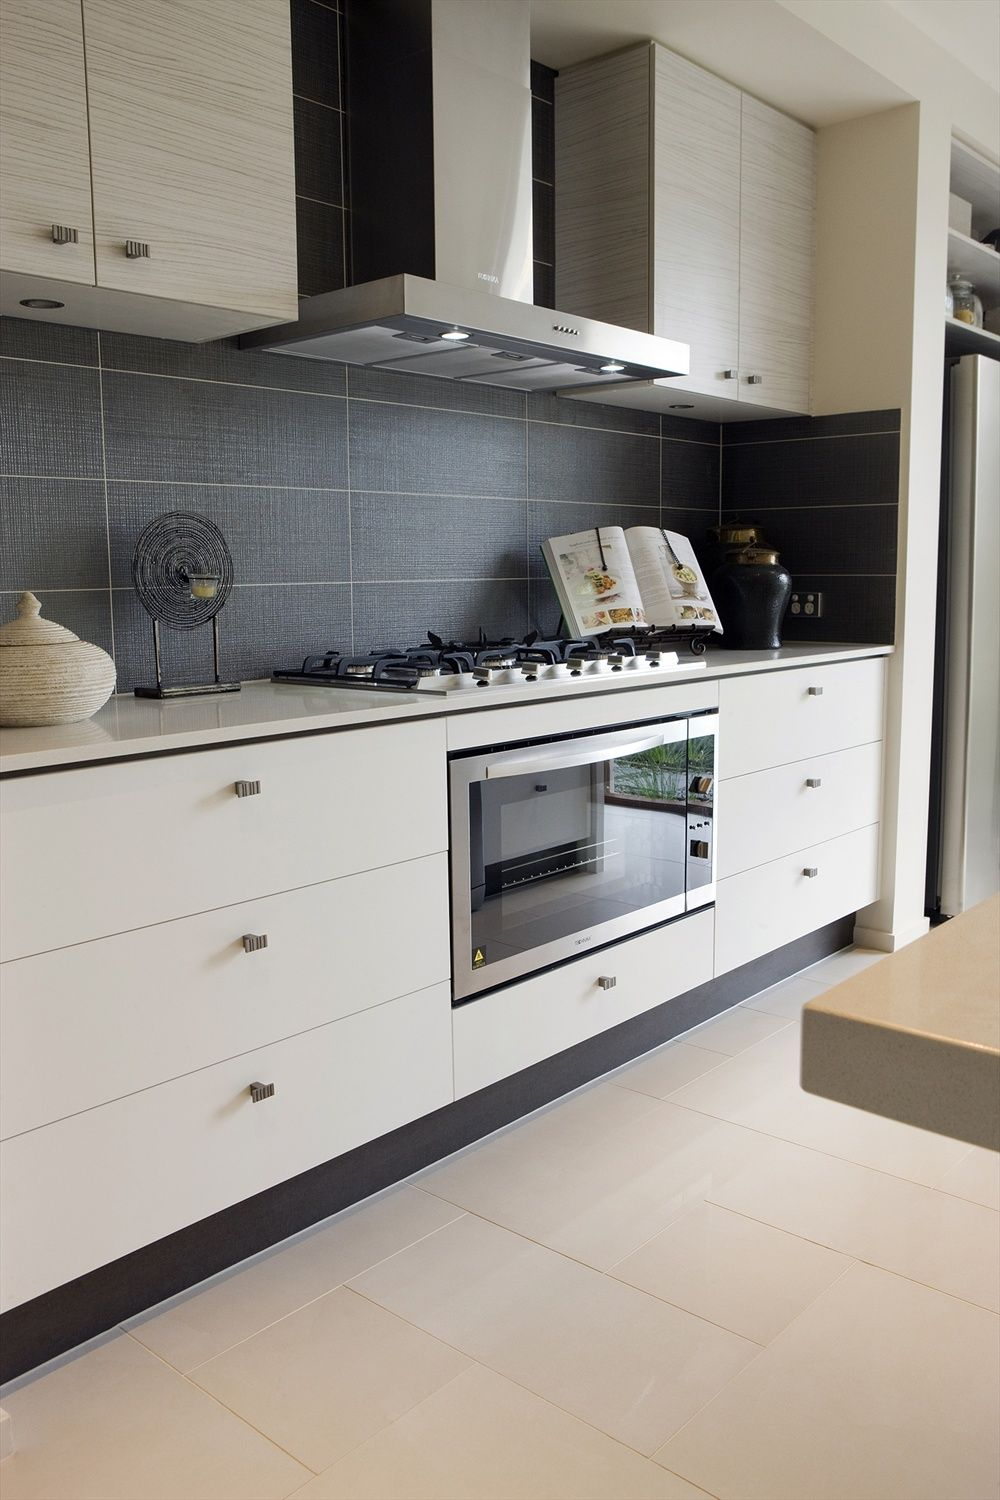 What Do You Think Of This Kitchens Tile Idea I Got From Beaumont